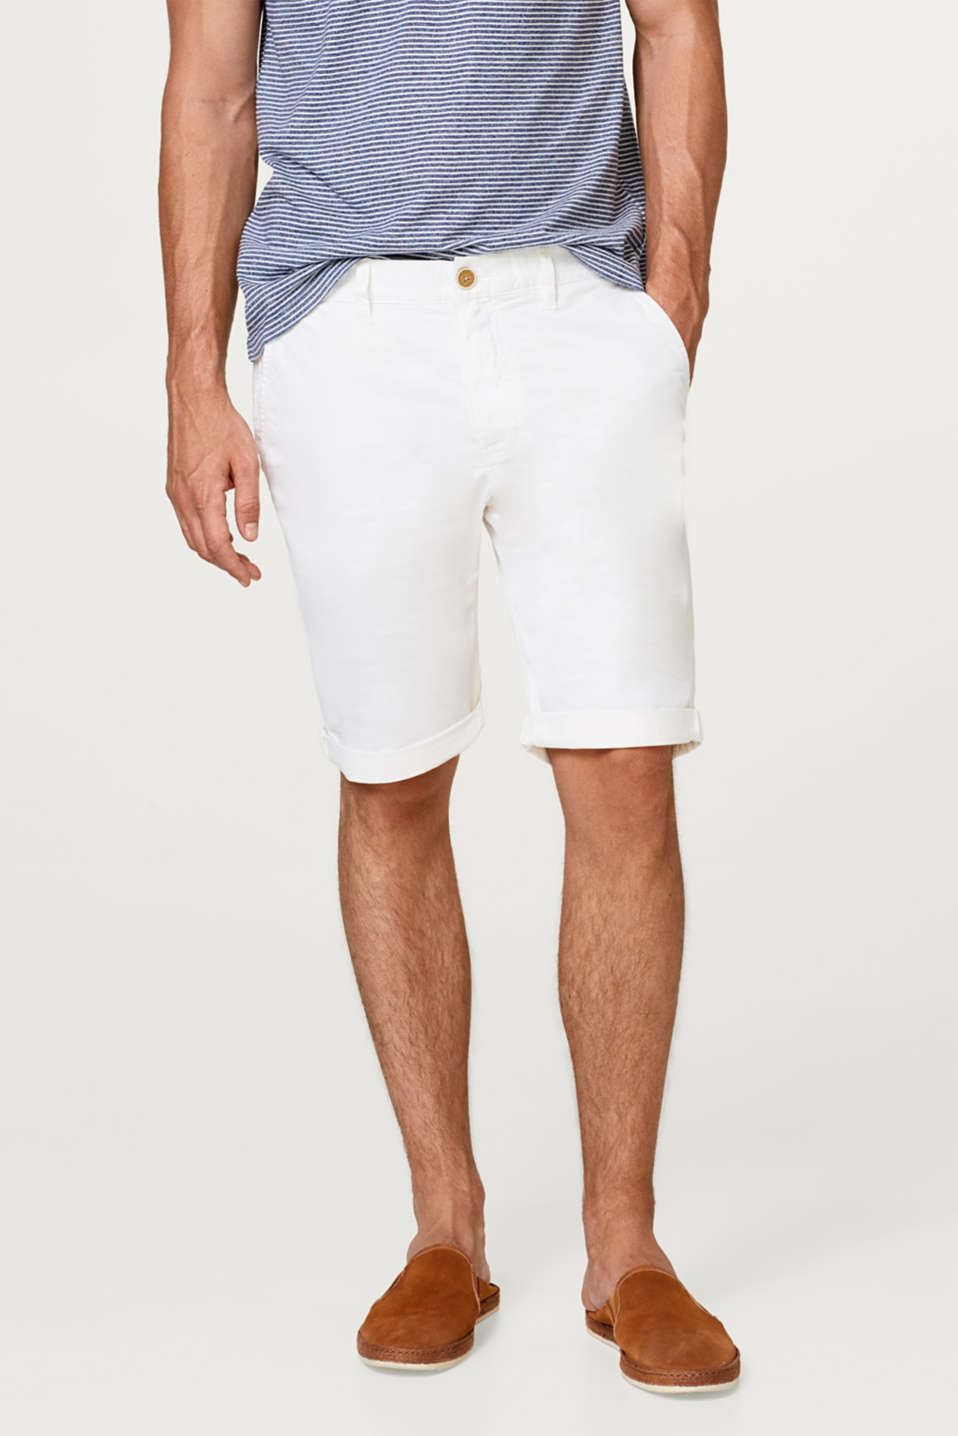 Esprit - Stretch Bermudas with textured stripes